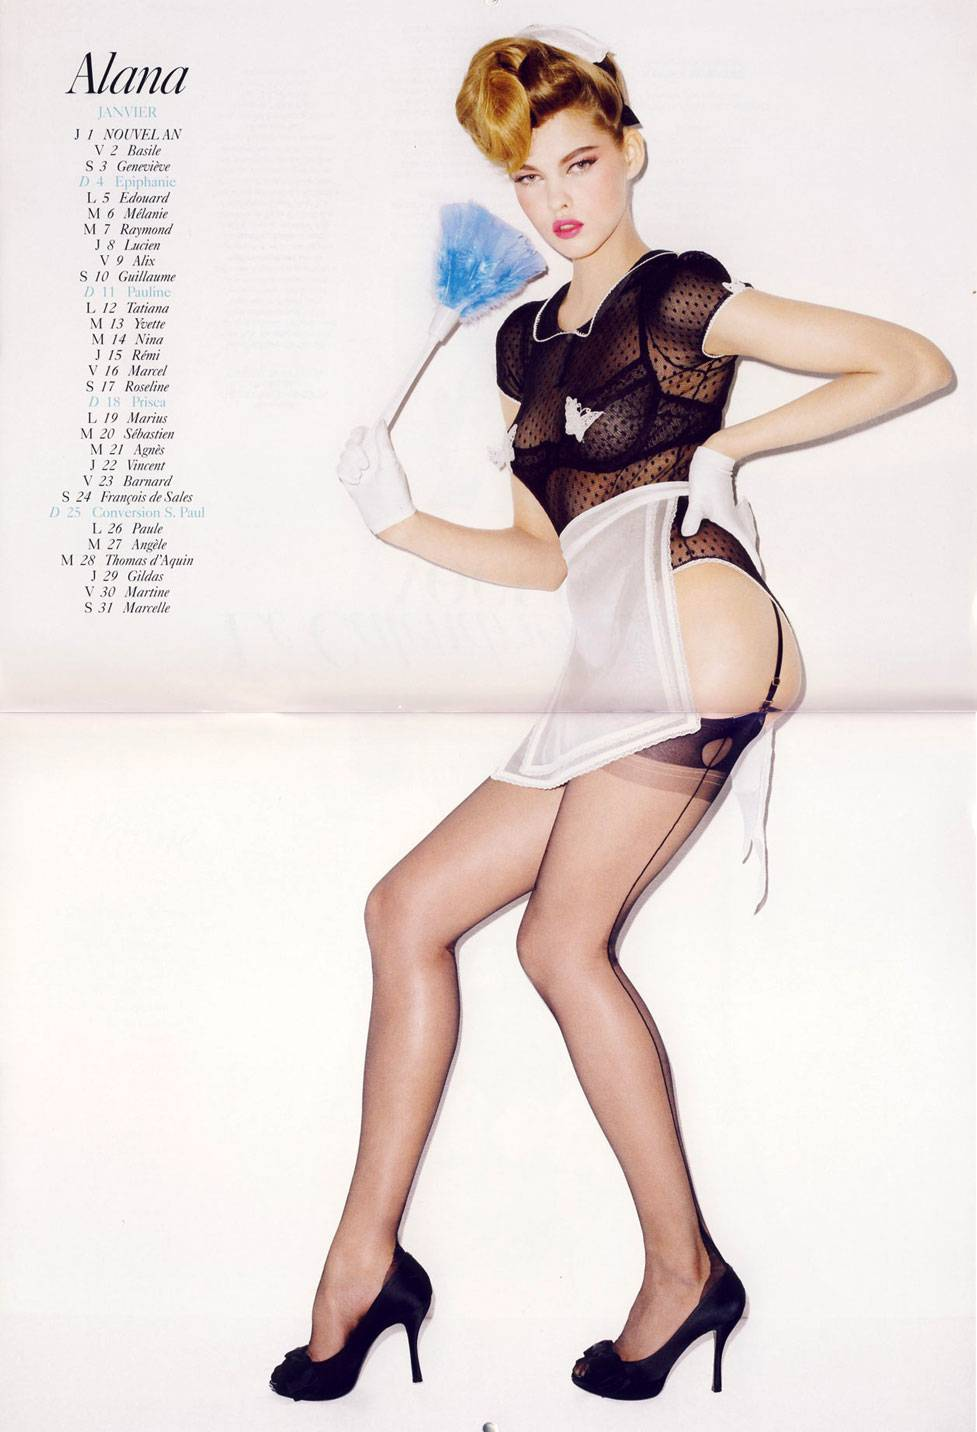 French Vogue 2009 calendar by Terry Richardson - январь. Alana